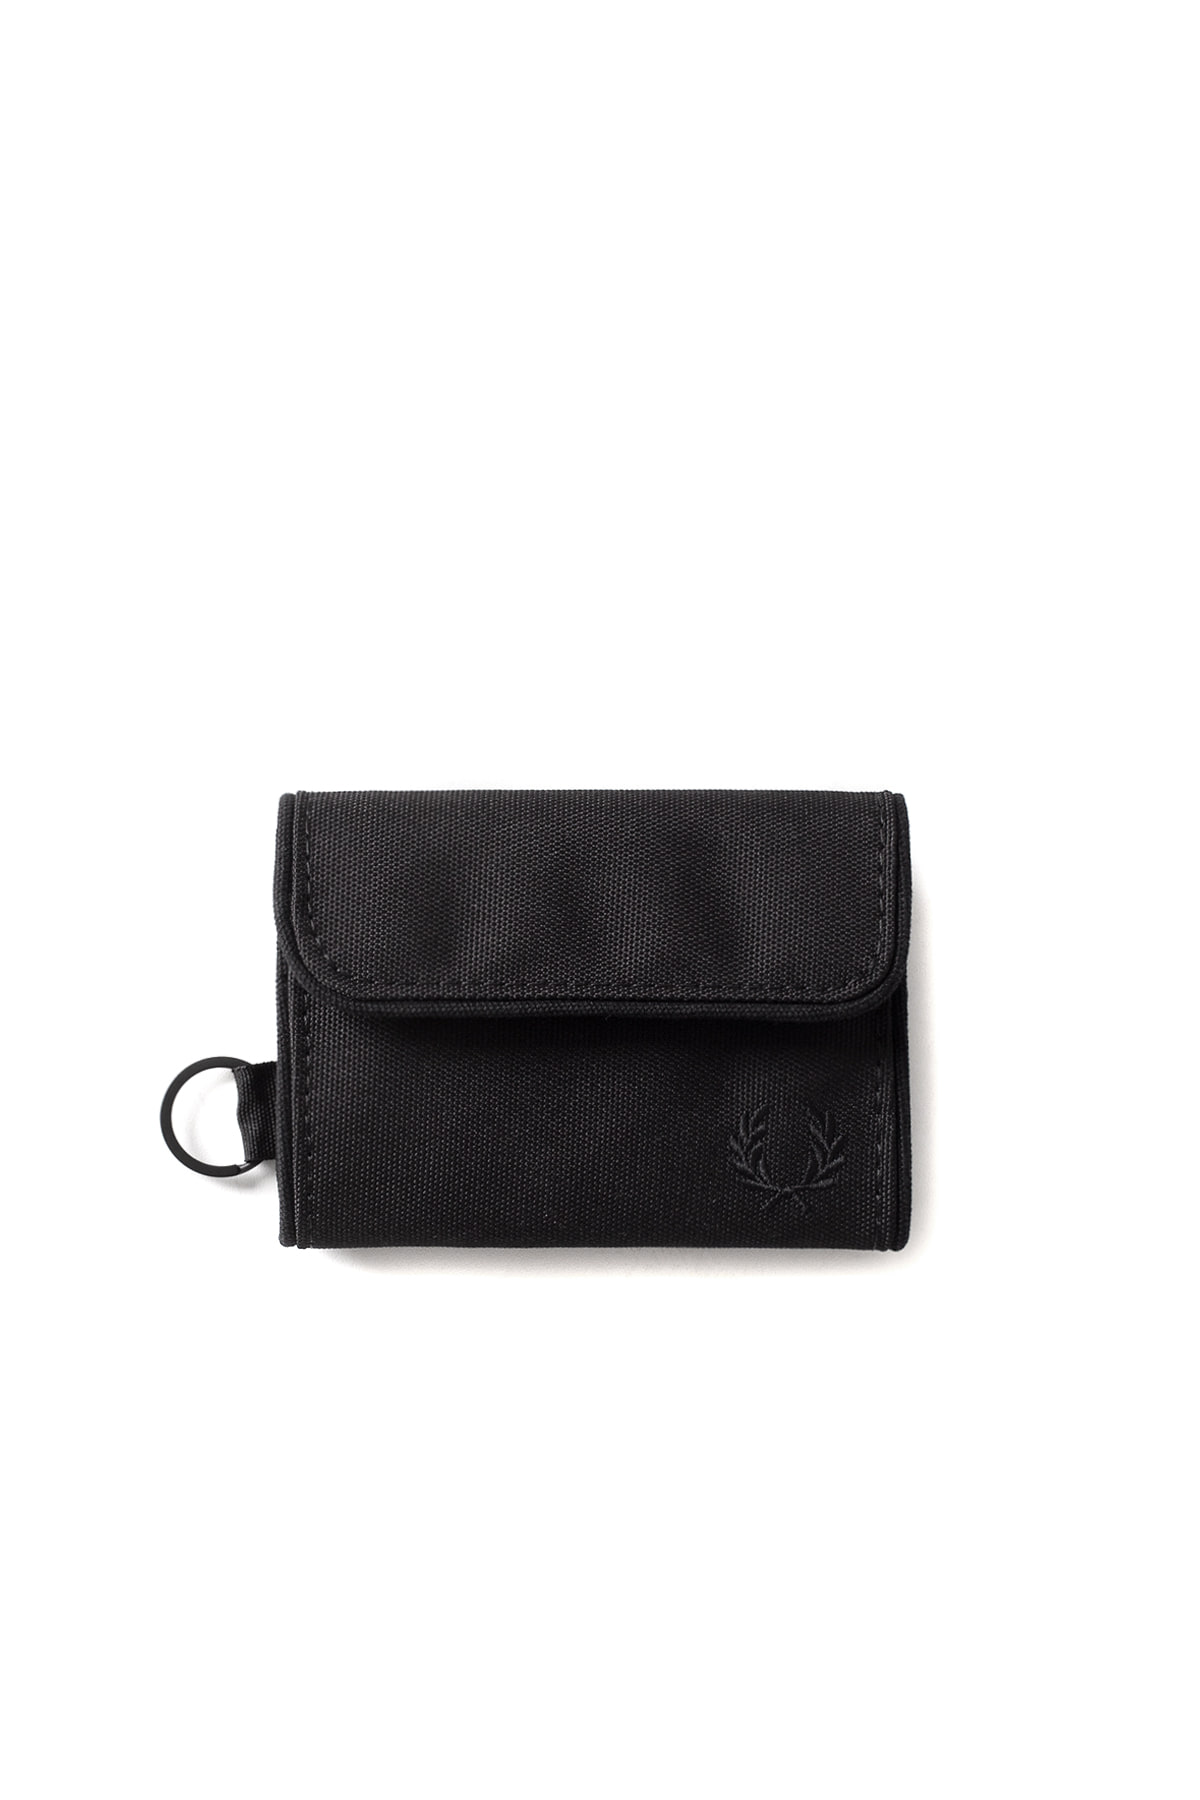 FRED PERRY : Sports Wallet (Black)